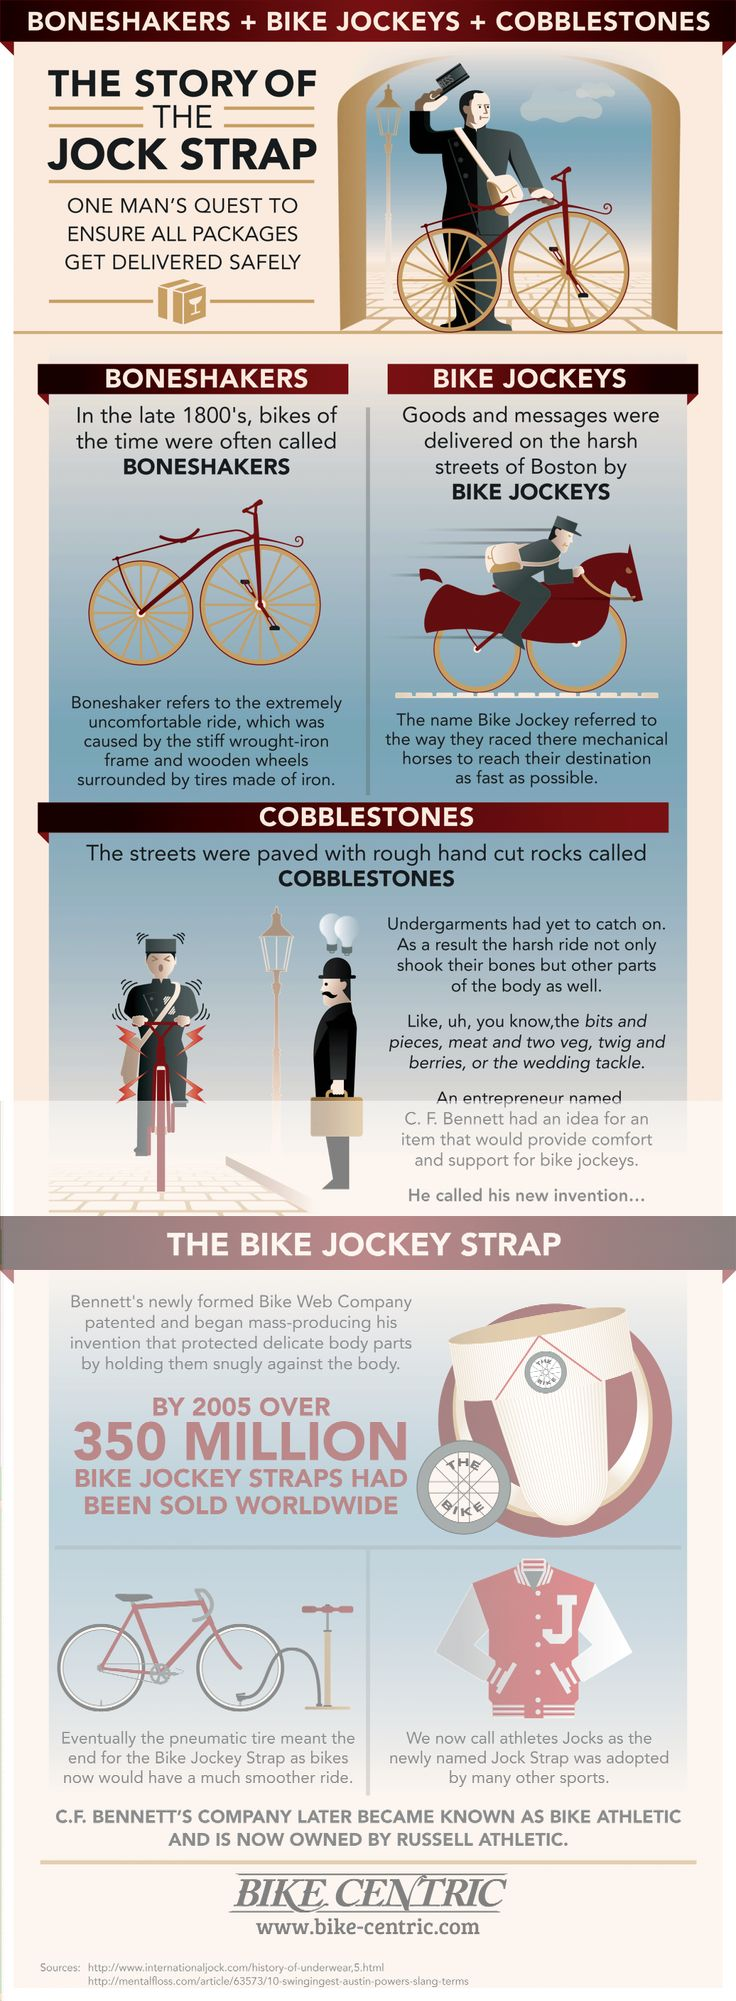 154 best Bike Posters/Ads images on Pinterest | Bicycle art, Bike ...